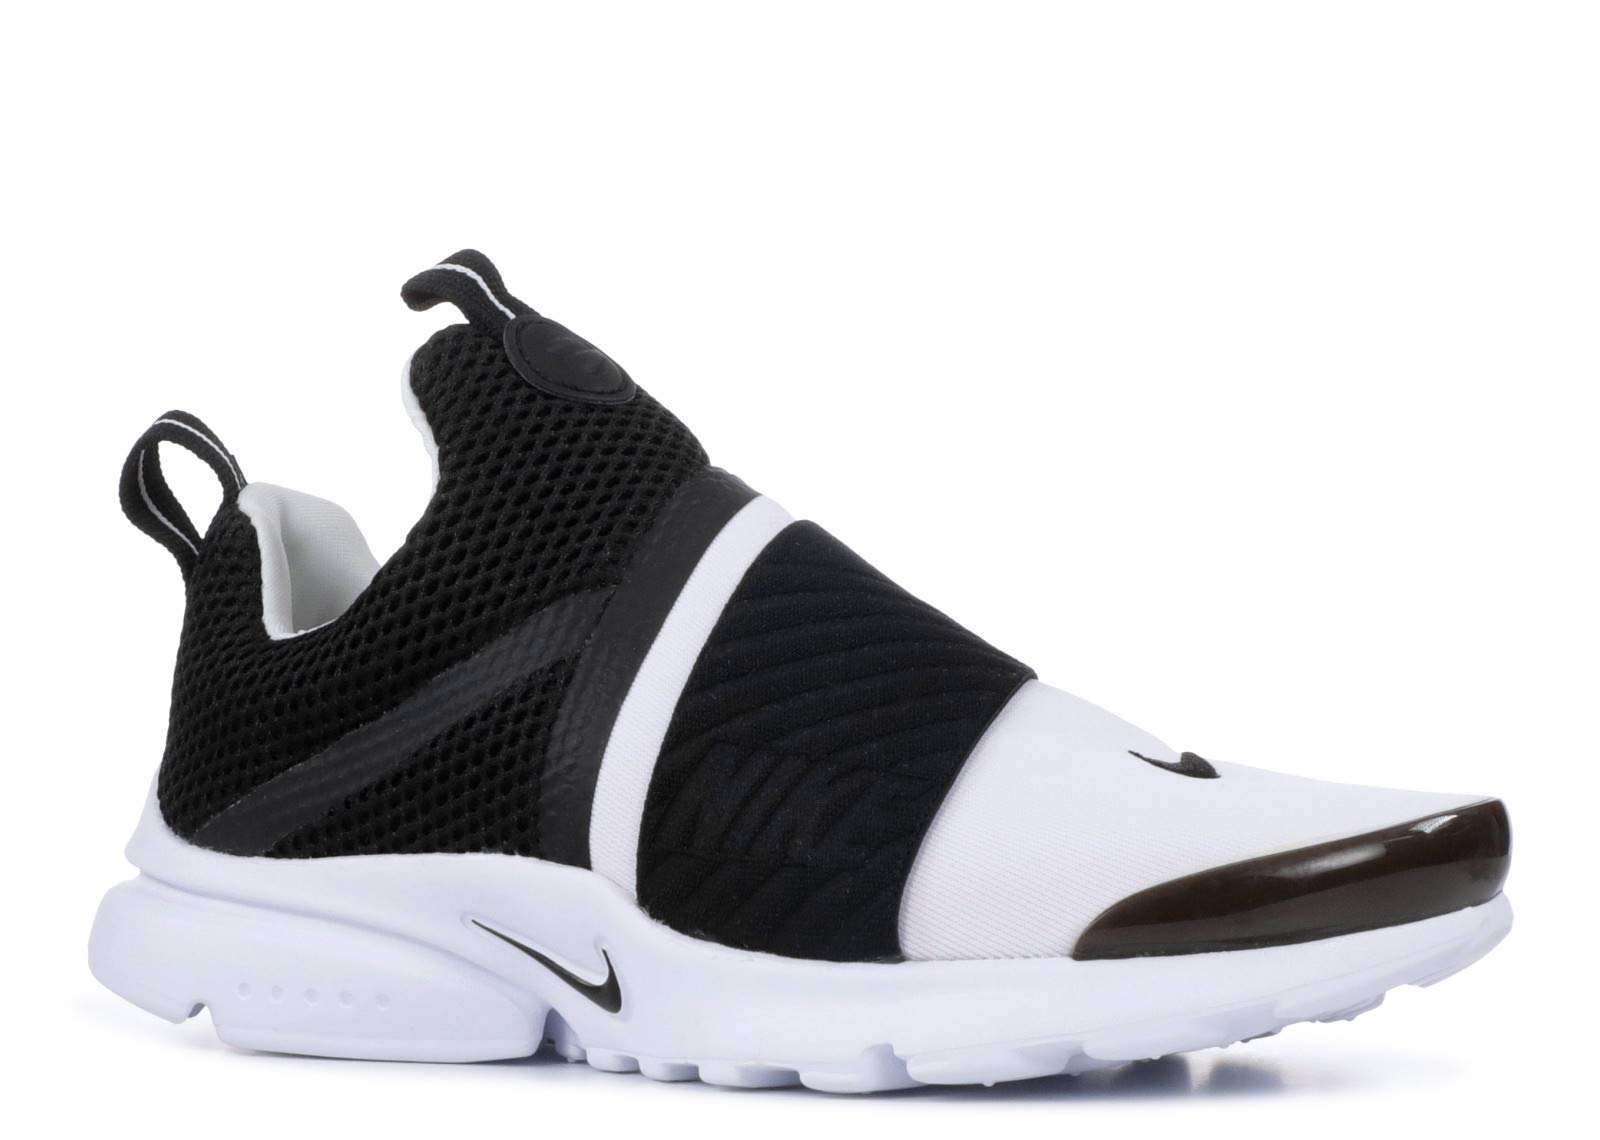 Nike Presto Extreme (PS) Pre School Boys Fashion Sneakers White/Black 870023-100 (2 M US)